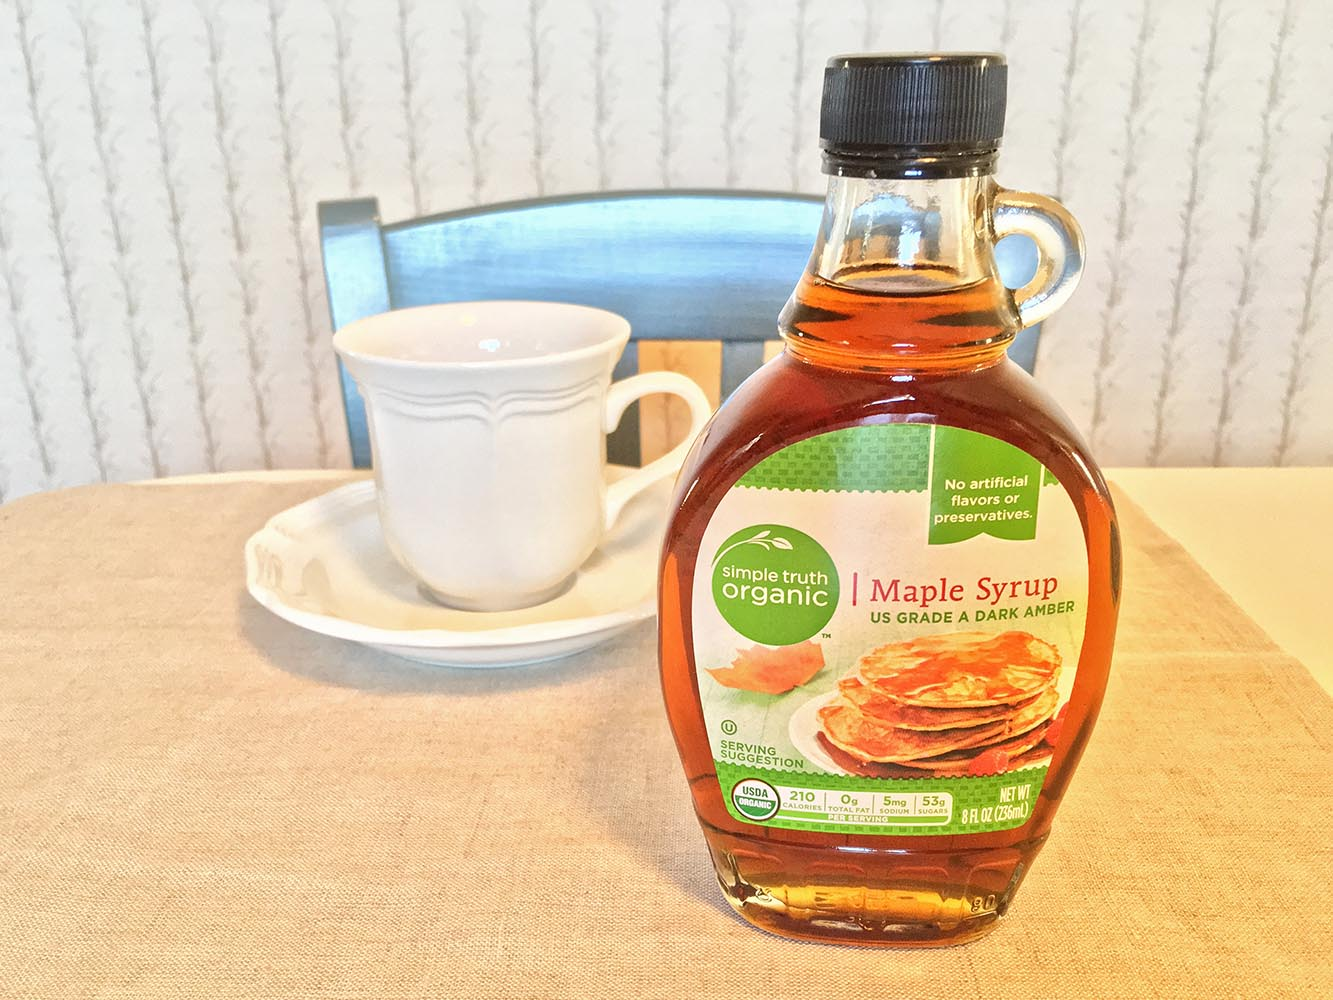 Simple Truth Organic Maple Syrup